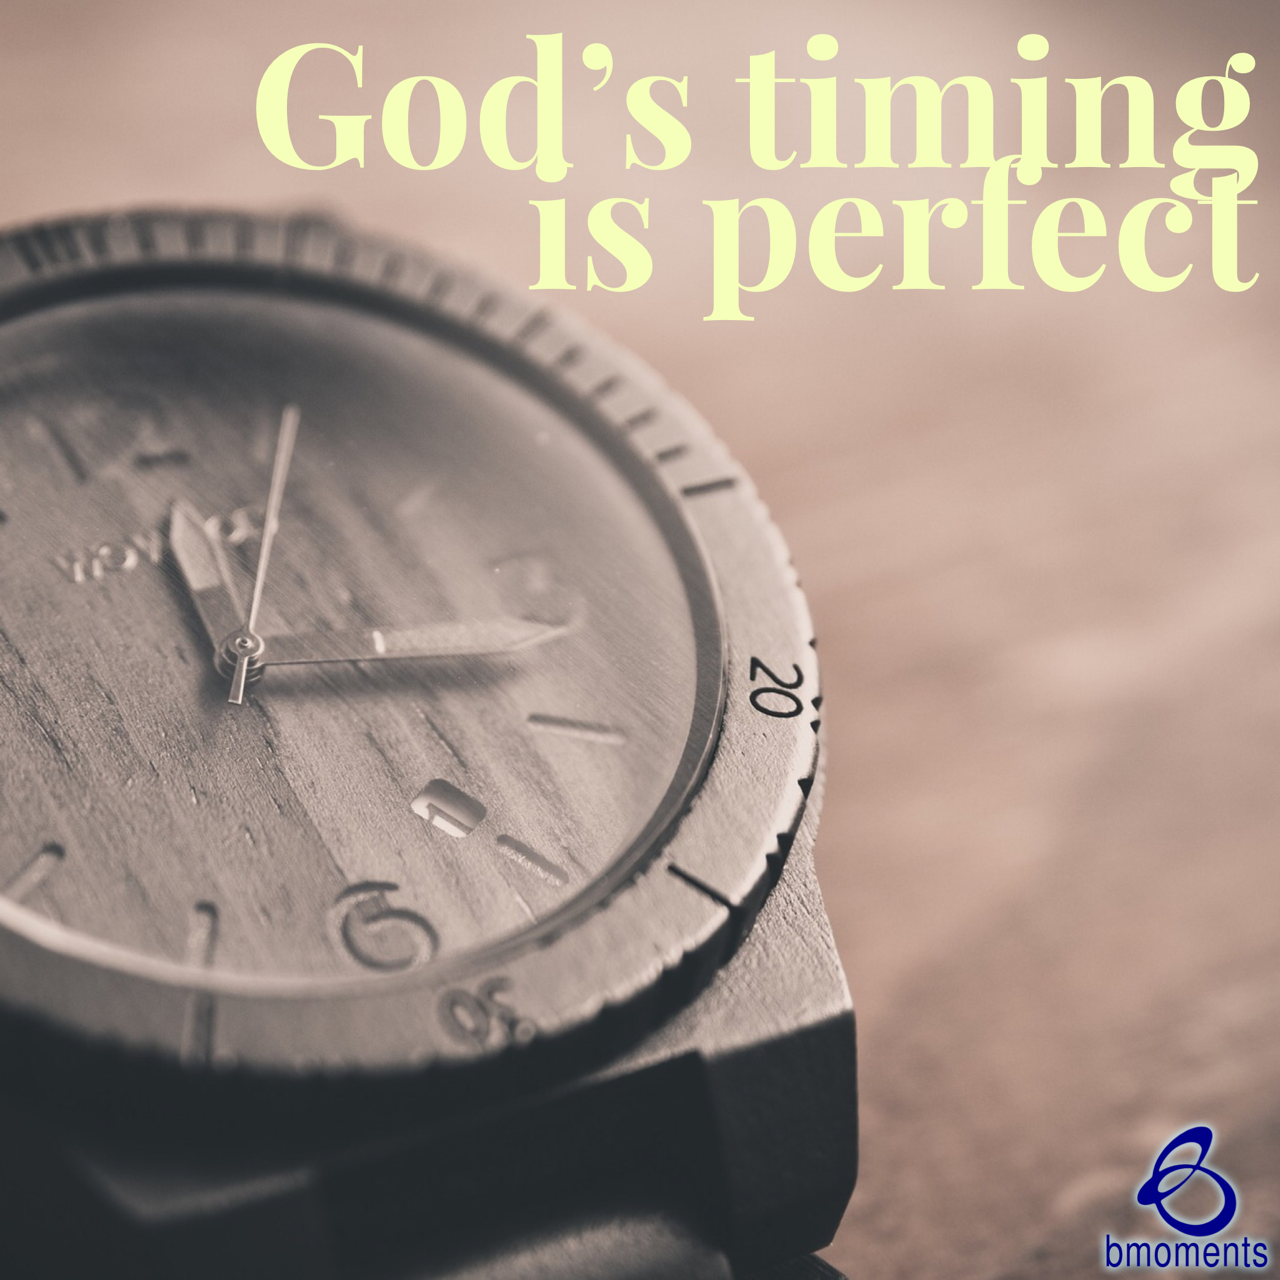 Be Comforted in God's Impeccable Timing